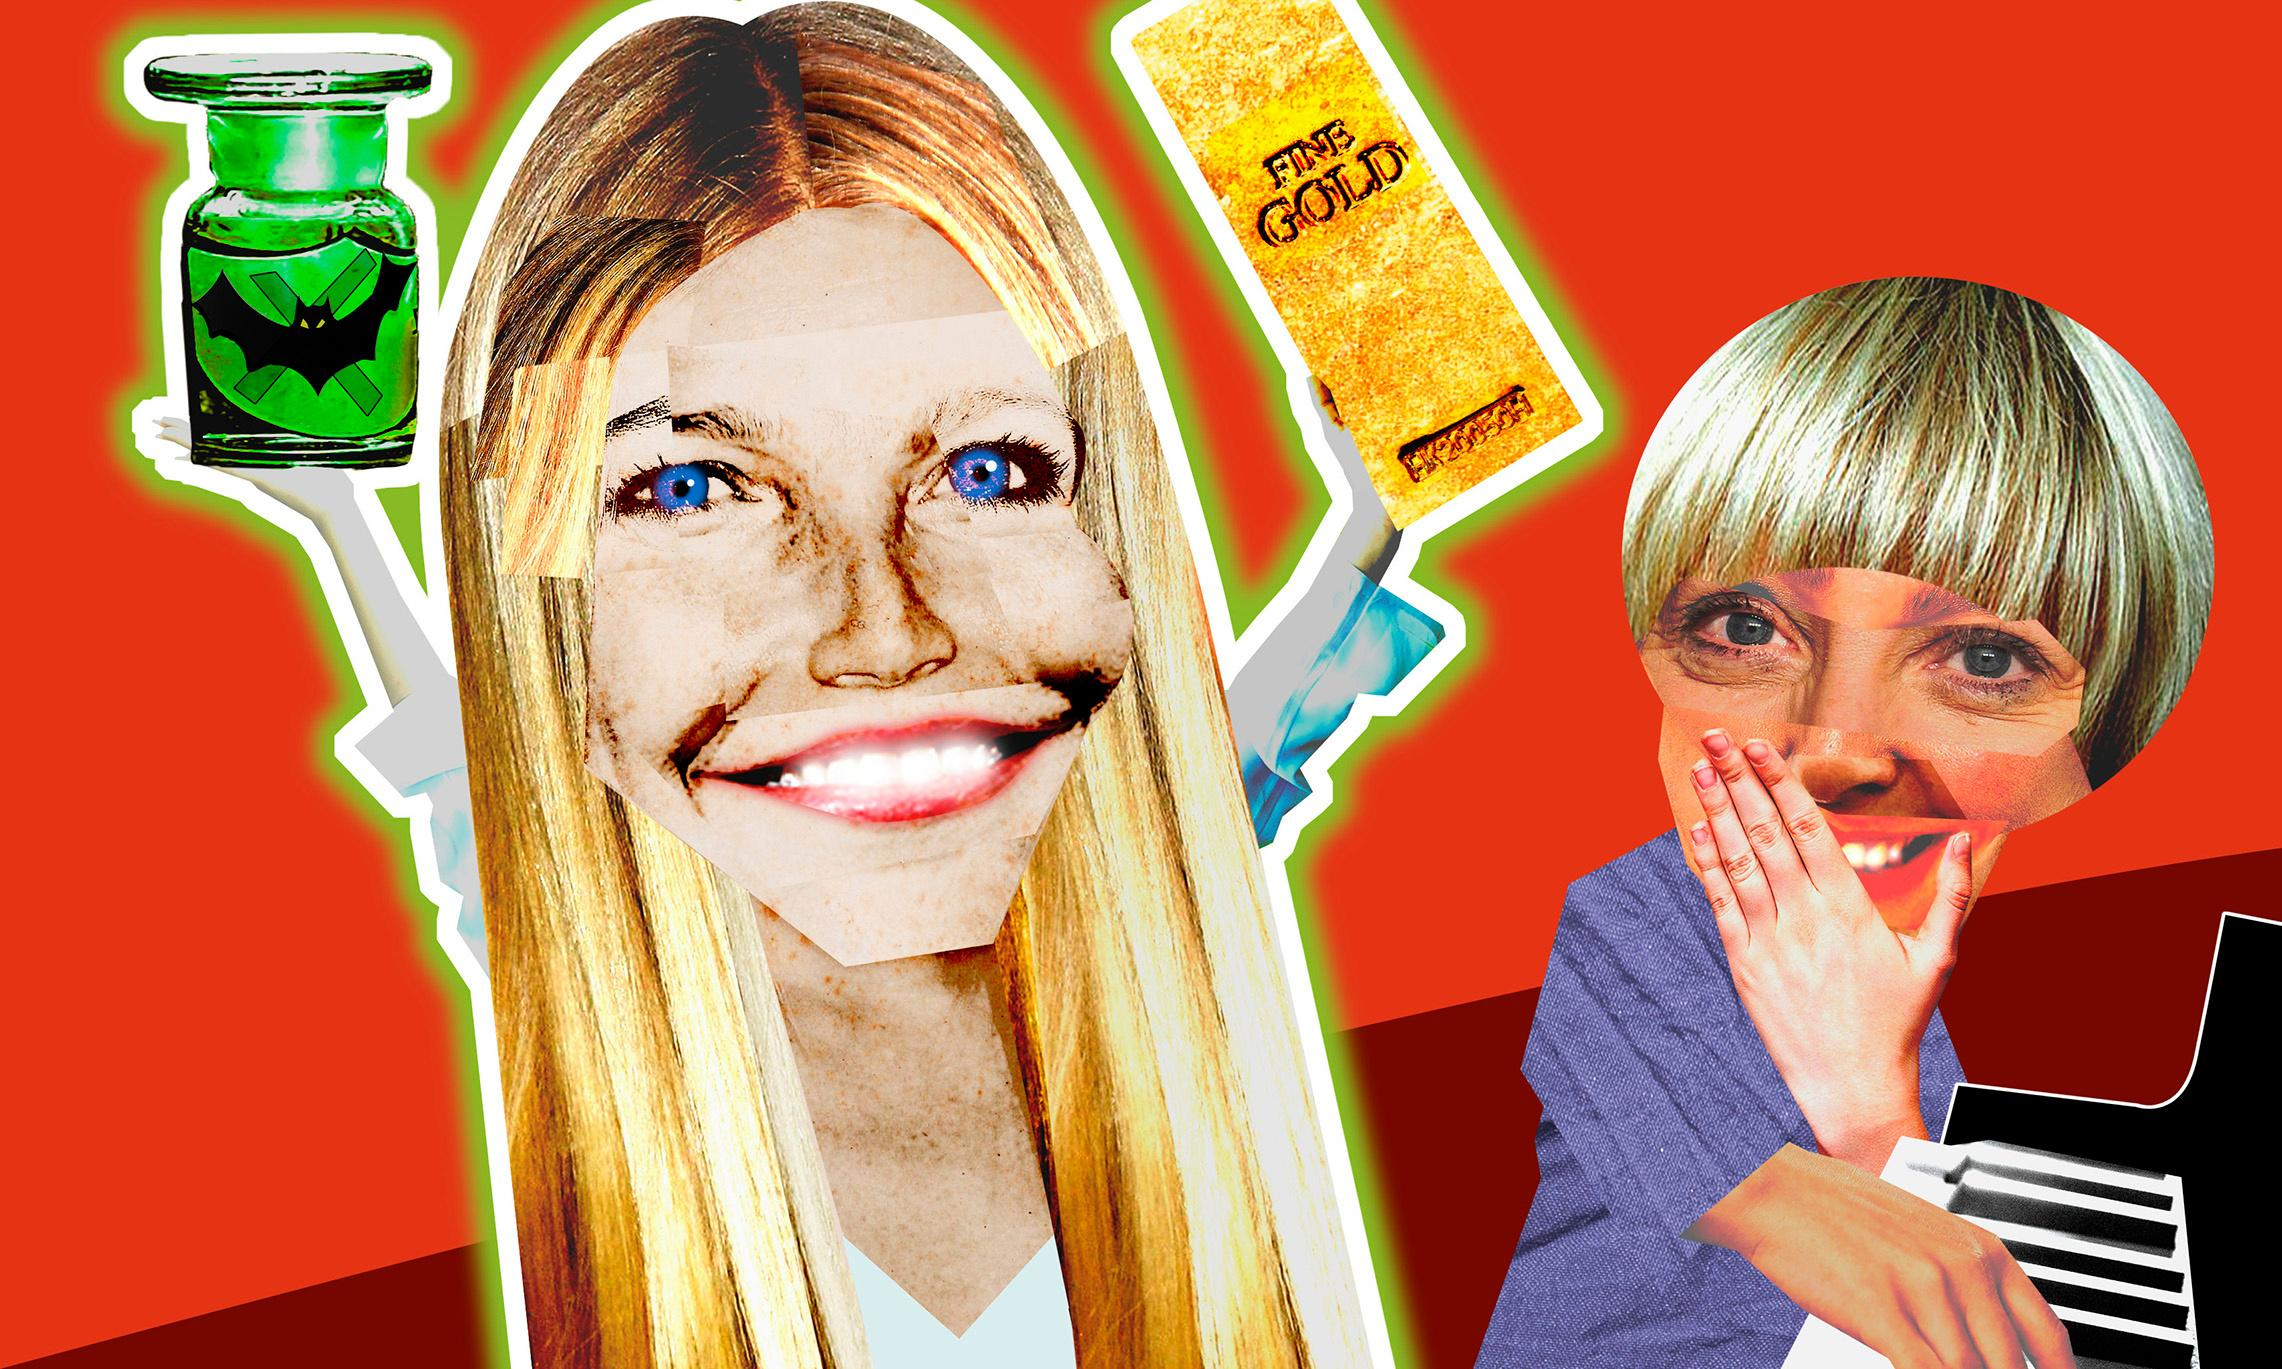 Roll up, roll up for Gwyneth Paltrow's great London Goop summit